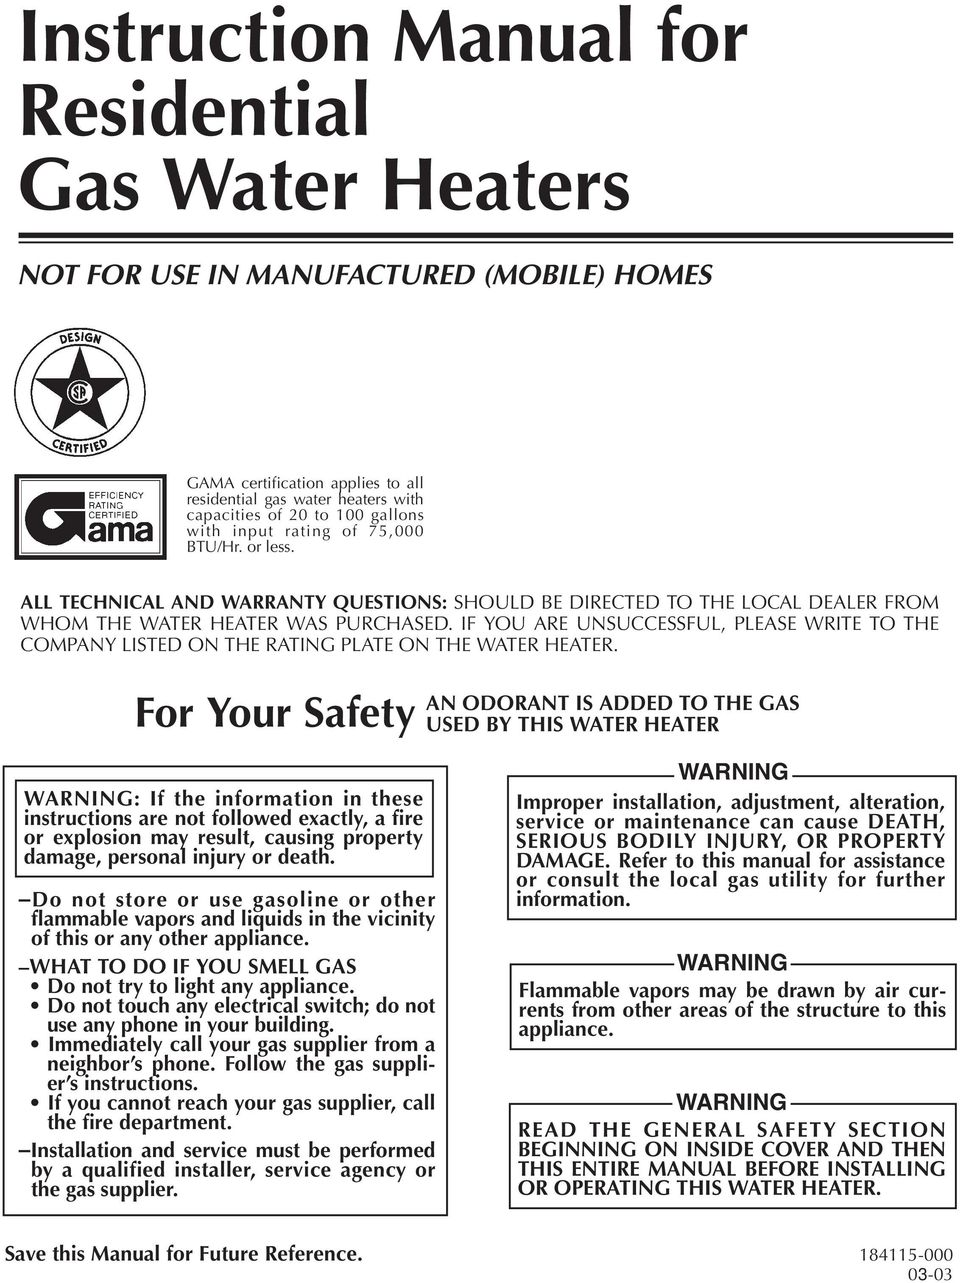 IF YOU ARE UNSUCCESSFUL, PLEASE WRITE TO THE COMPANY LISTED ON THE RATING PLATE ON THE WATER HEATER.